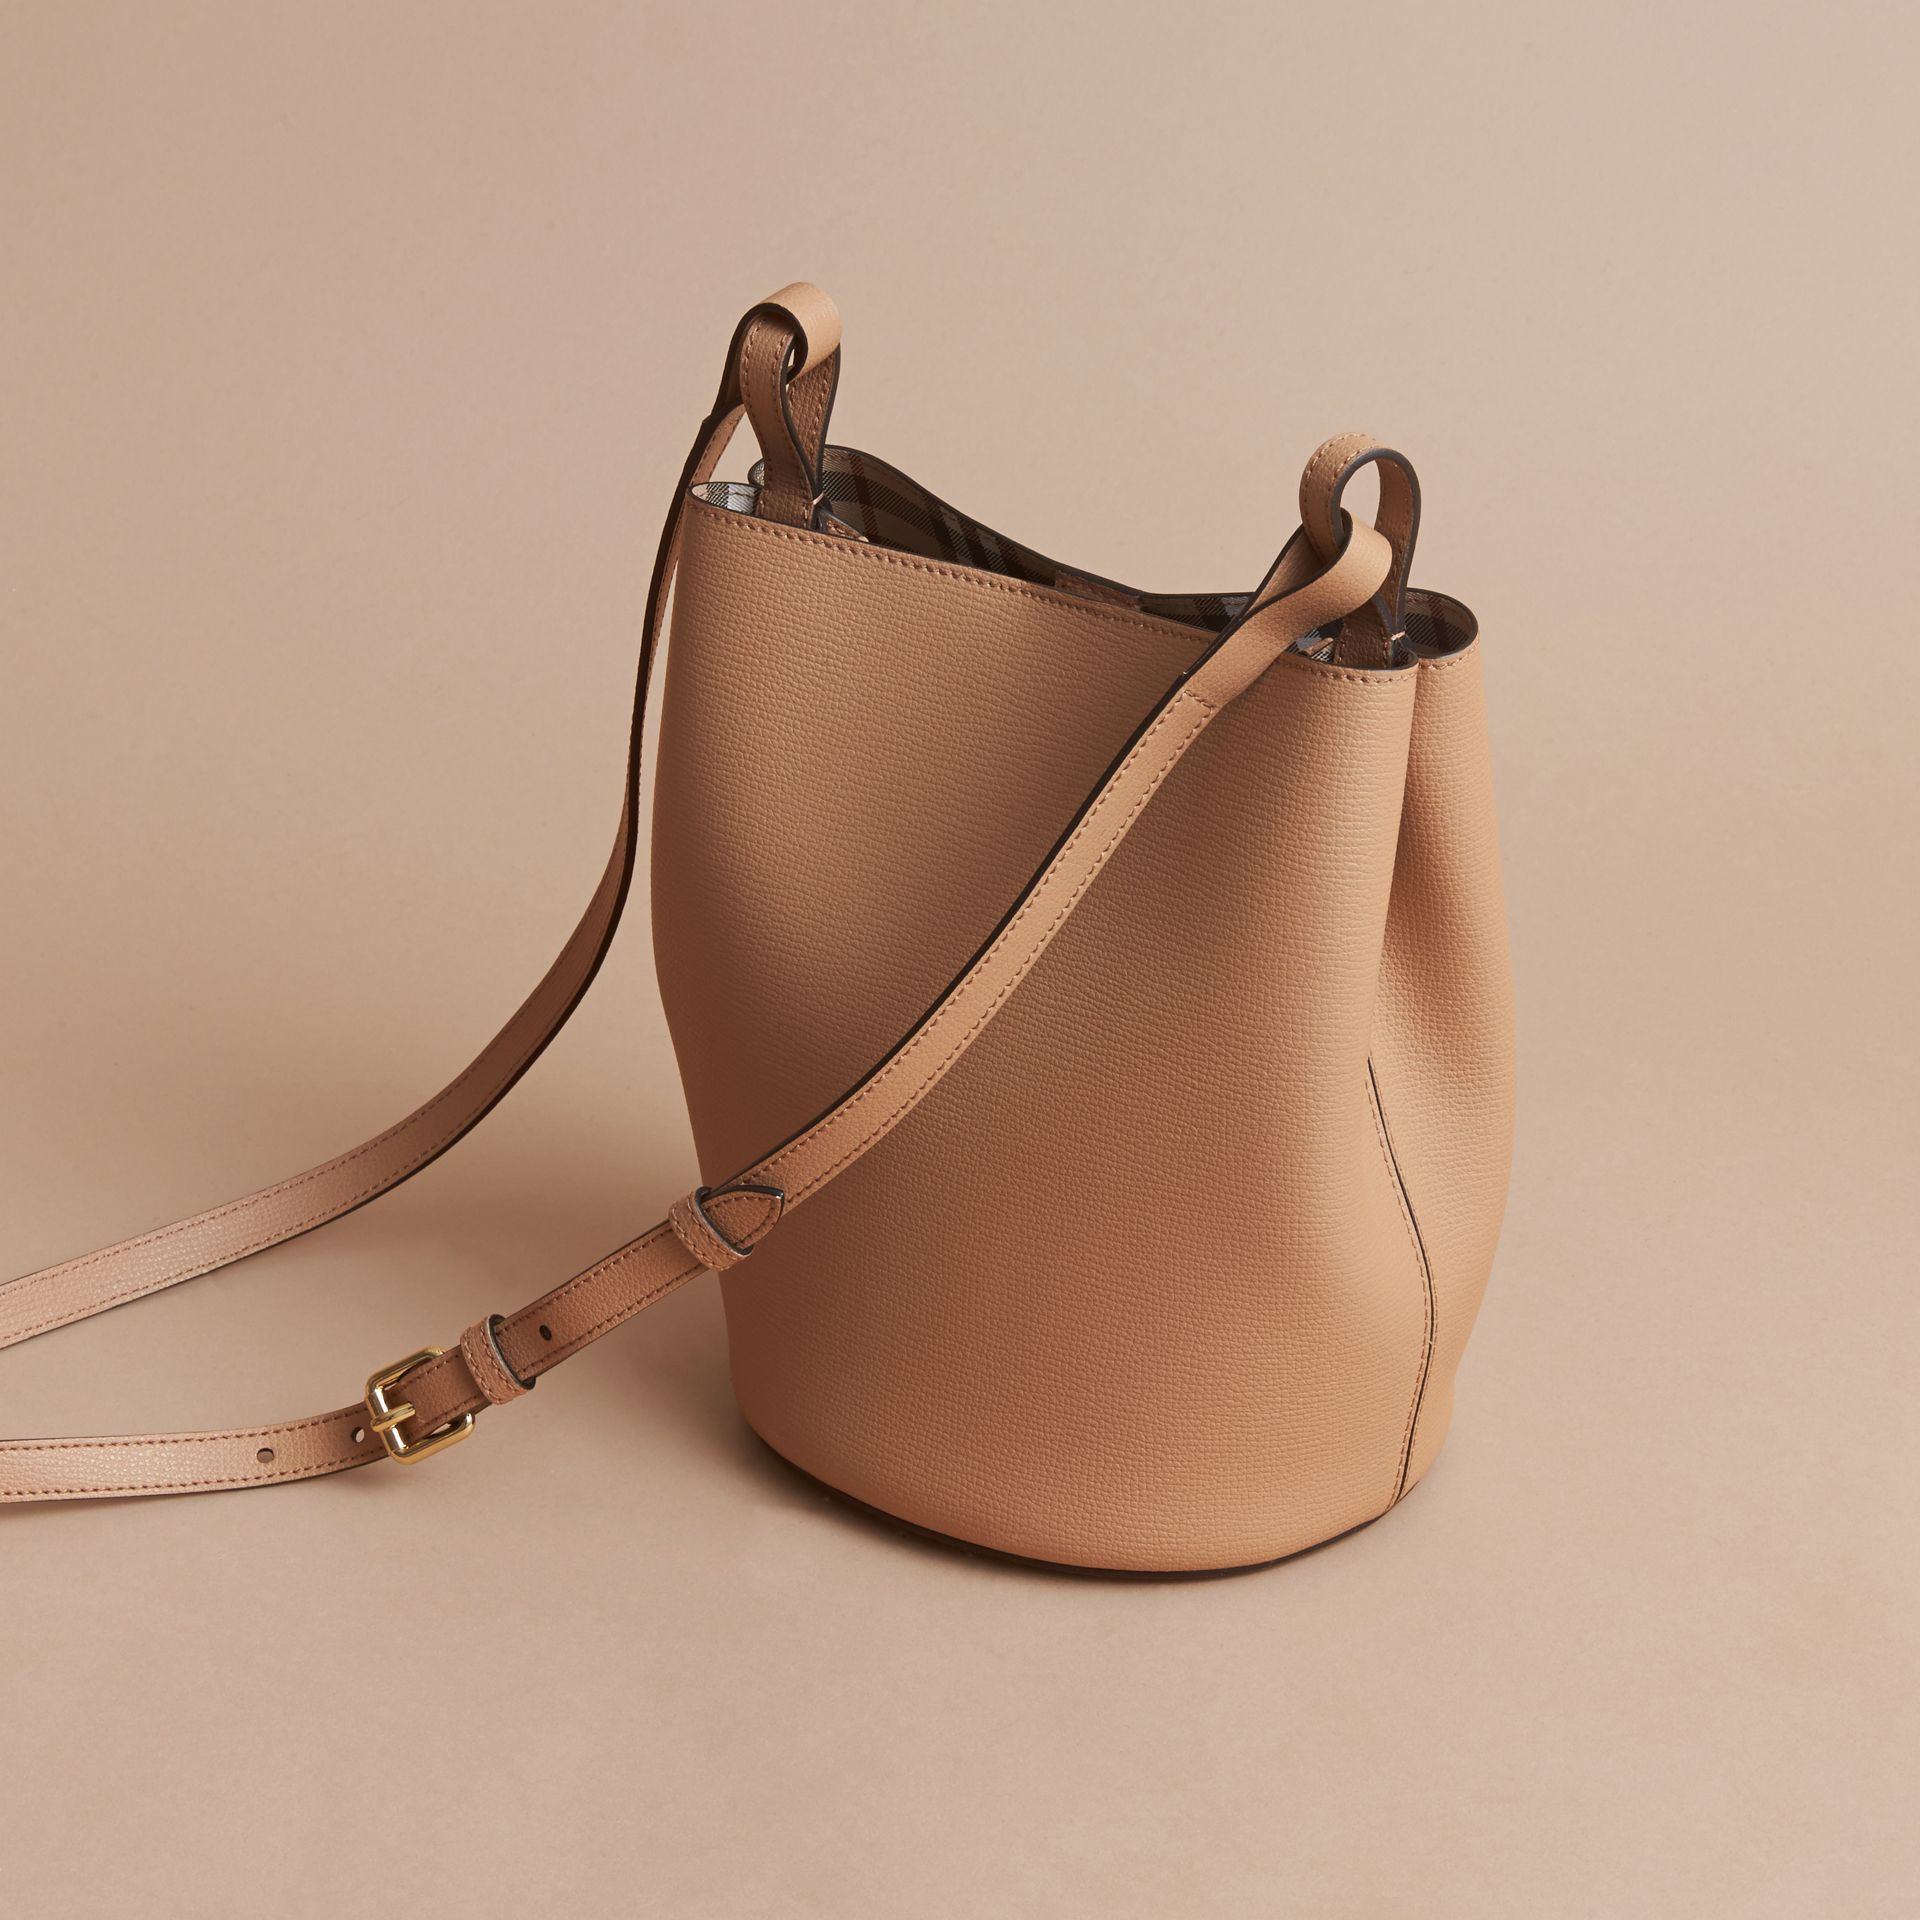 Leather and Haymarket Check Crossbody Bucket Bag in Mid Camel - Women | Burberry United Kingdom - gallery image 4